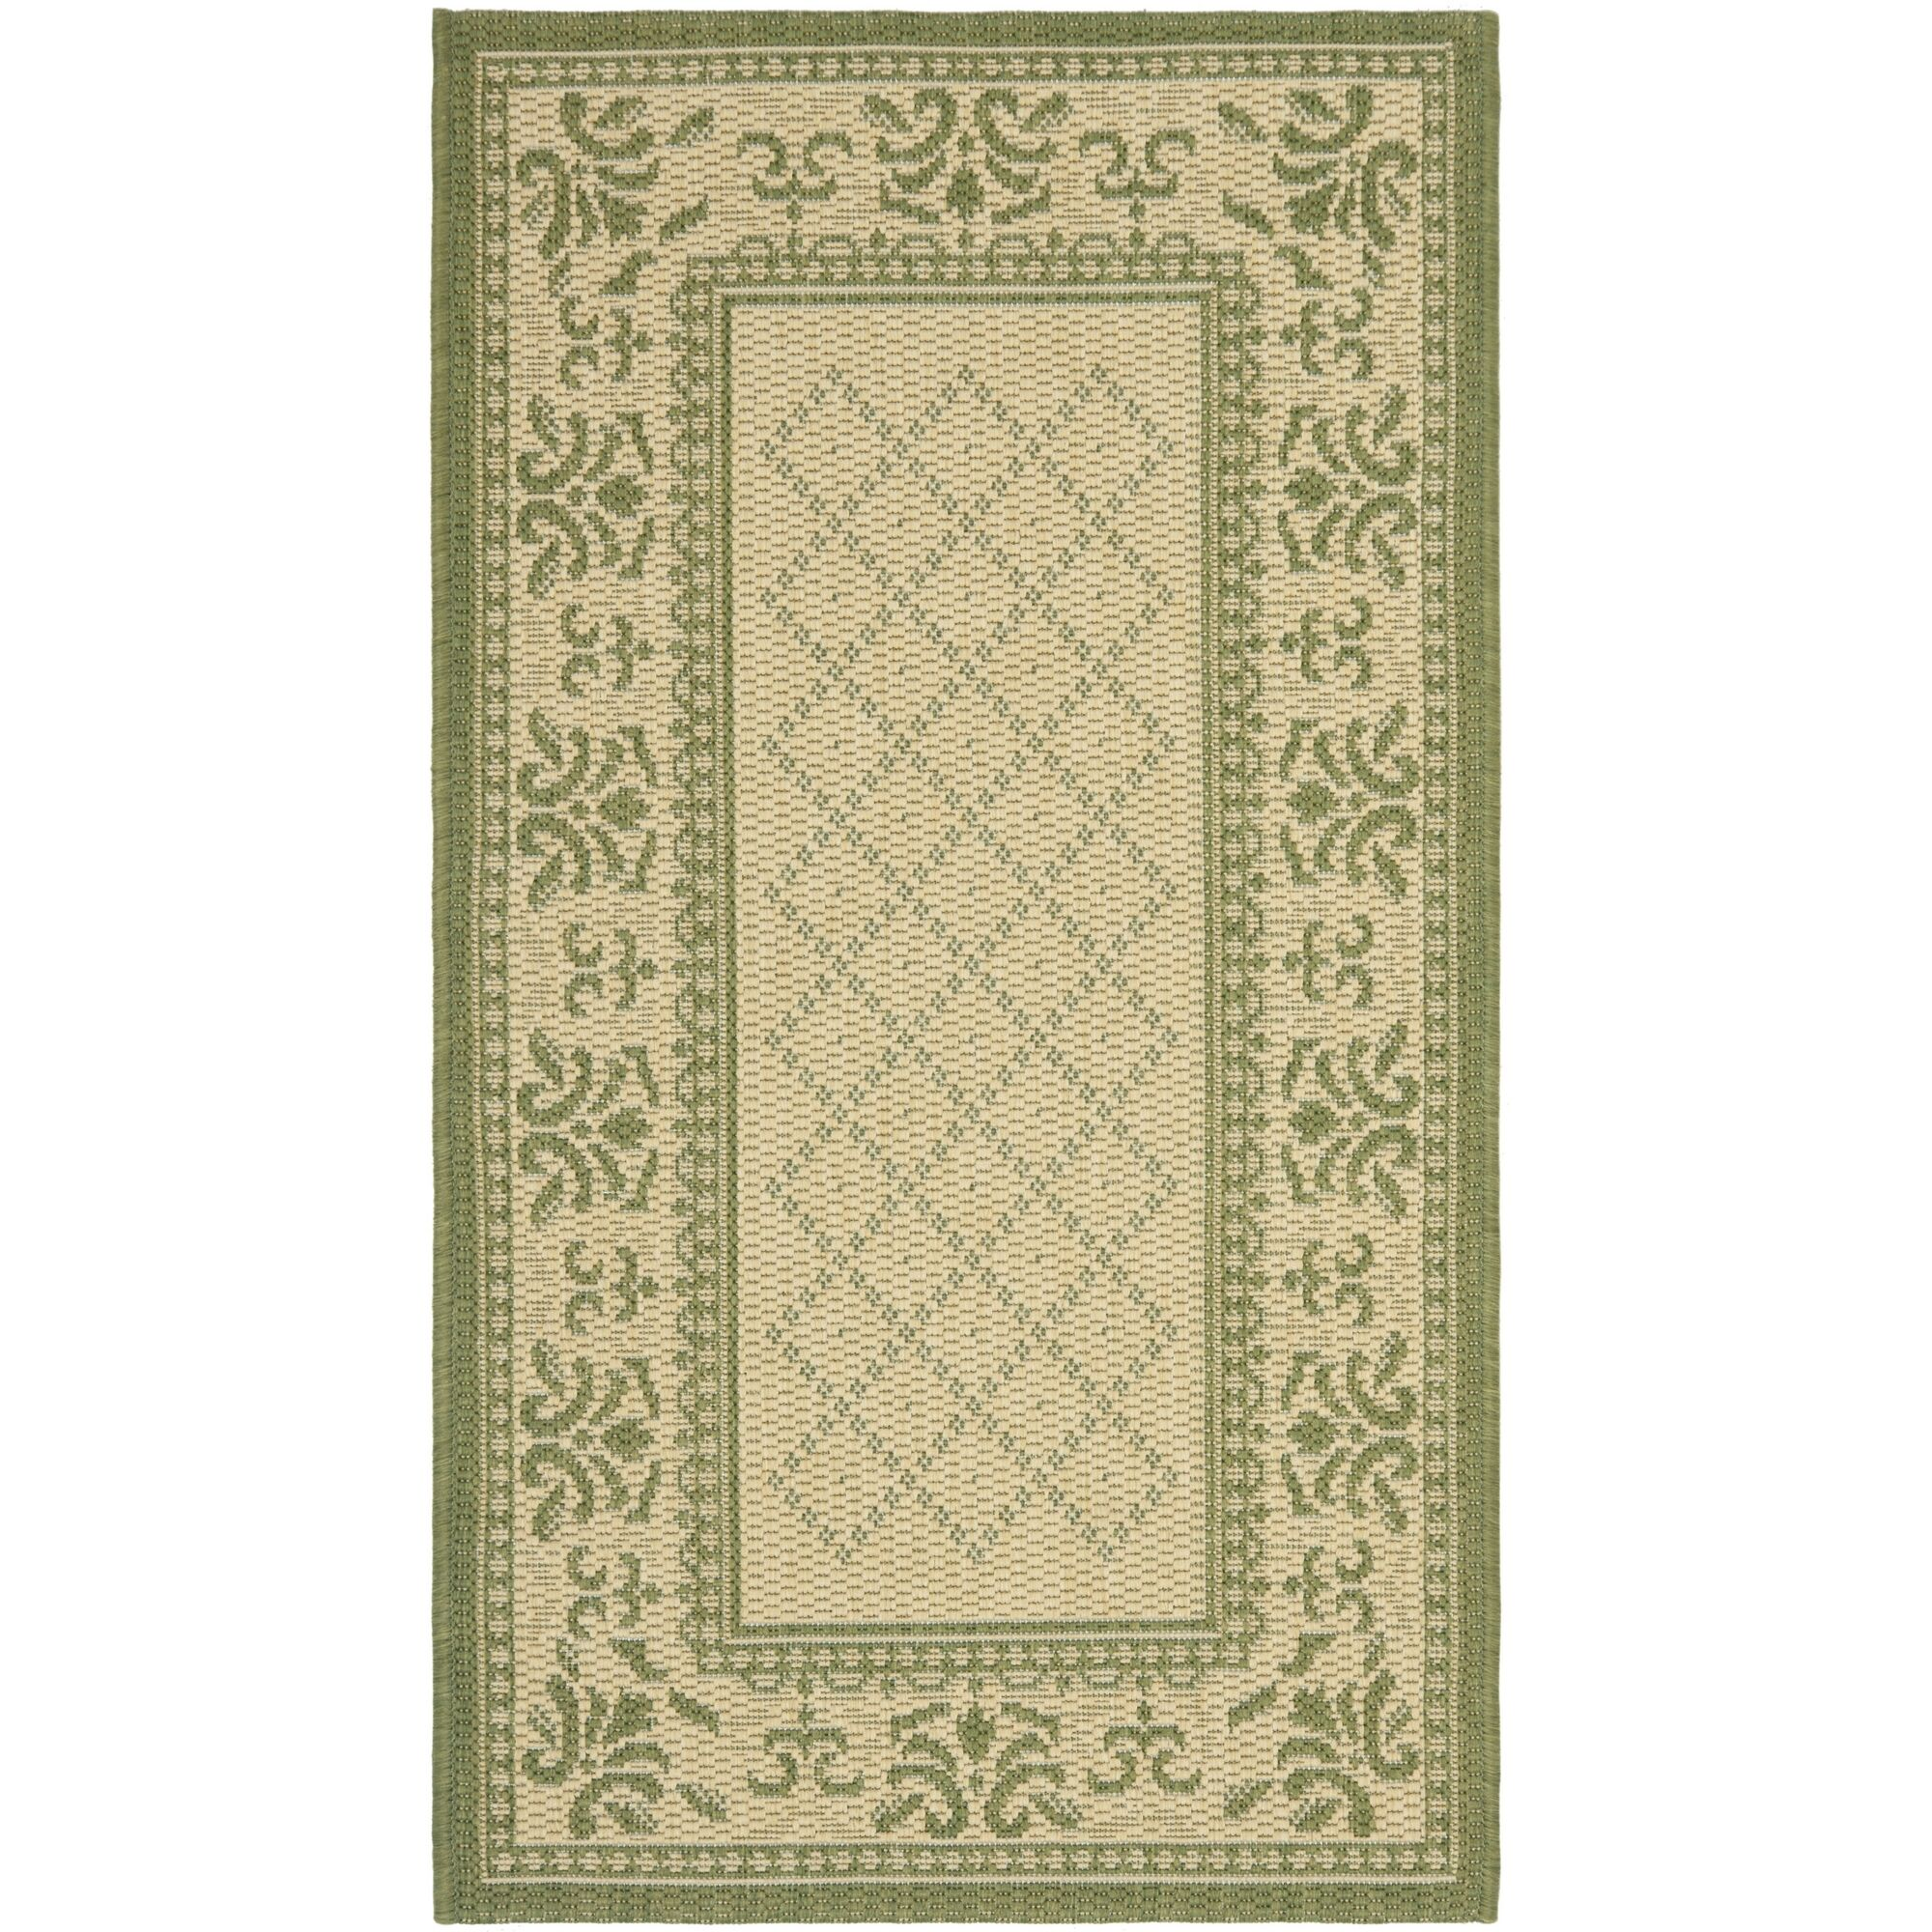 Beasley Natural/Olive Outdoor Rug Rug Size: Rectangle 8' x 11'